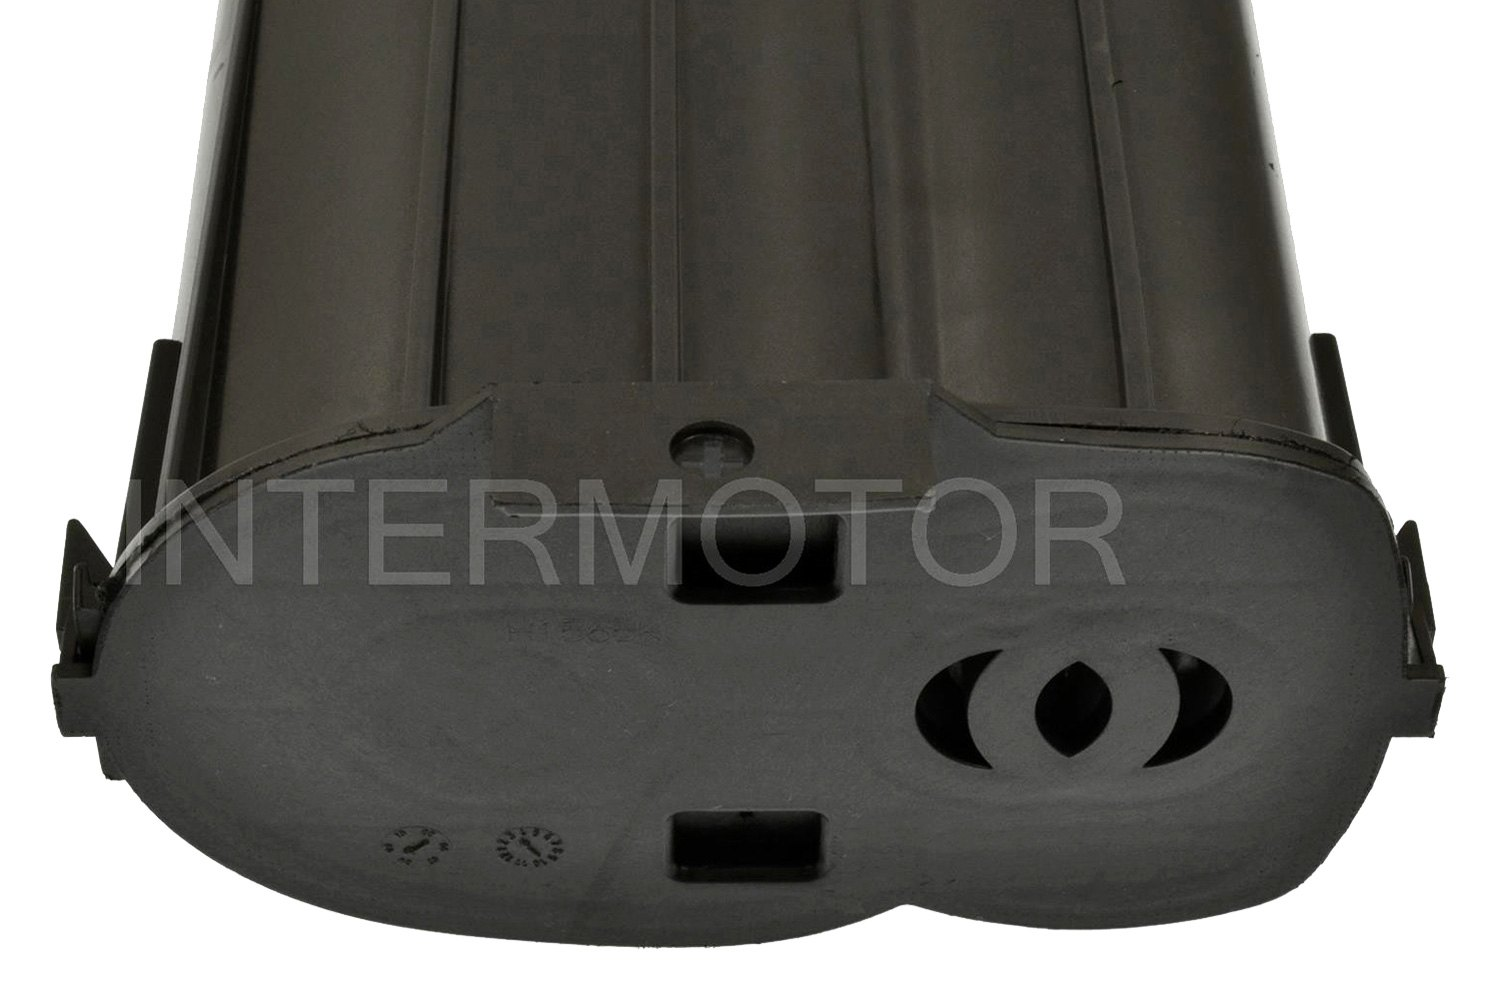 CP3316 Standard Motor Products Intermotor Fuel Vapor Canister